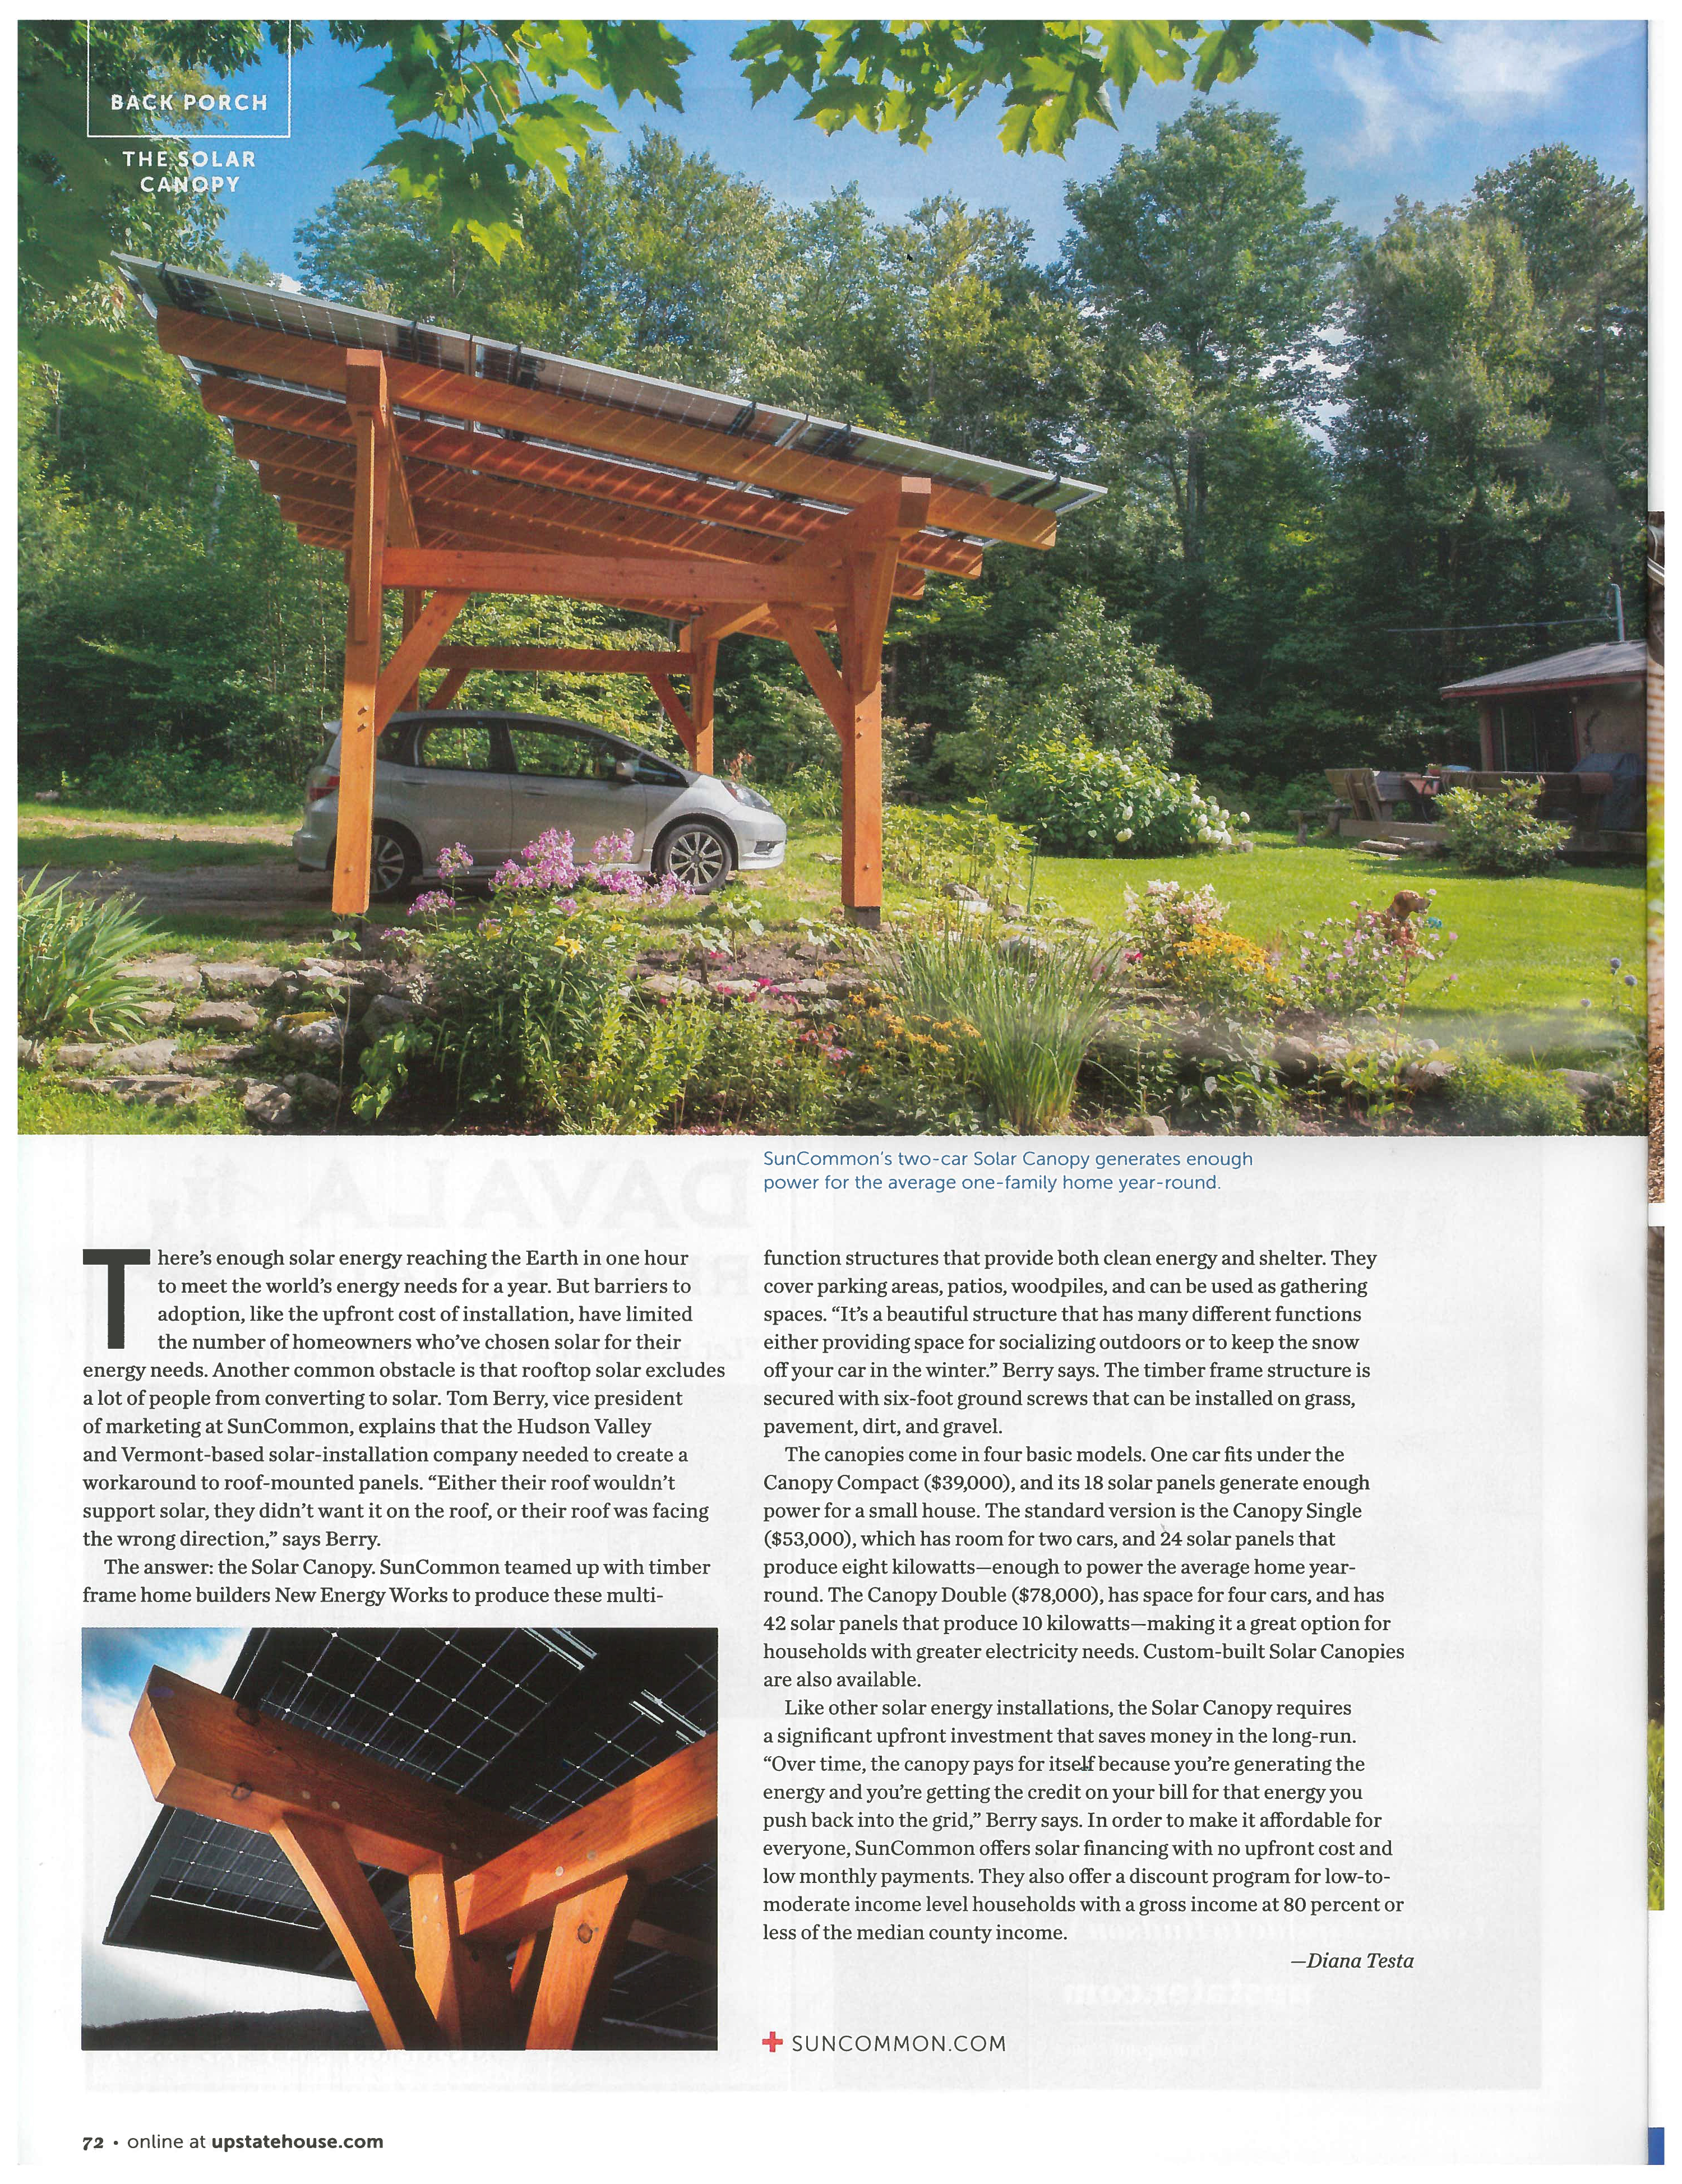 Timbered Solar Canopy with SunCommon and New Energy Works featured in Upstate House Summer 2021